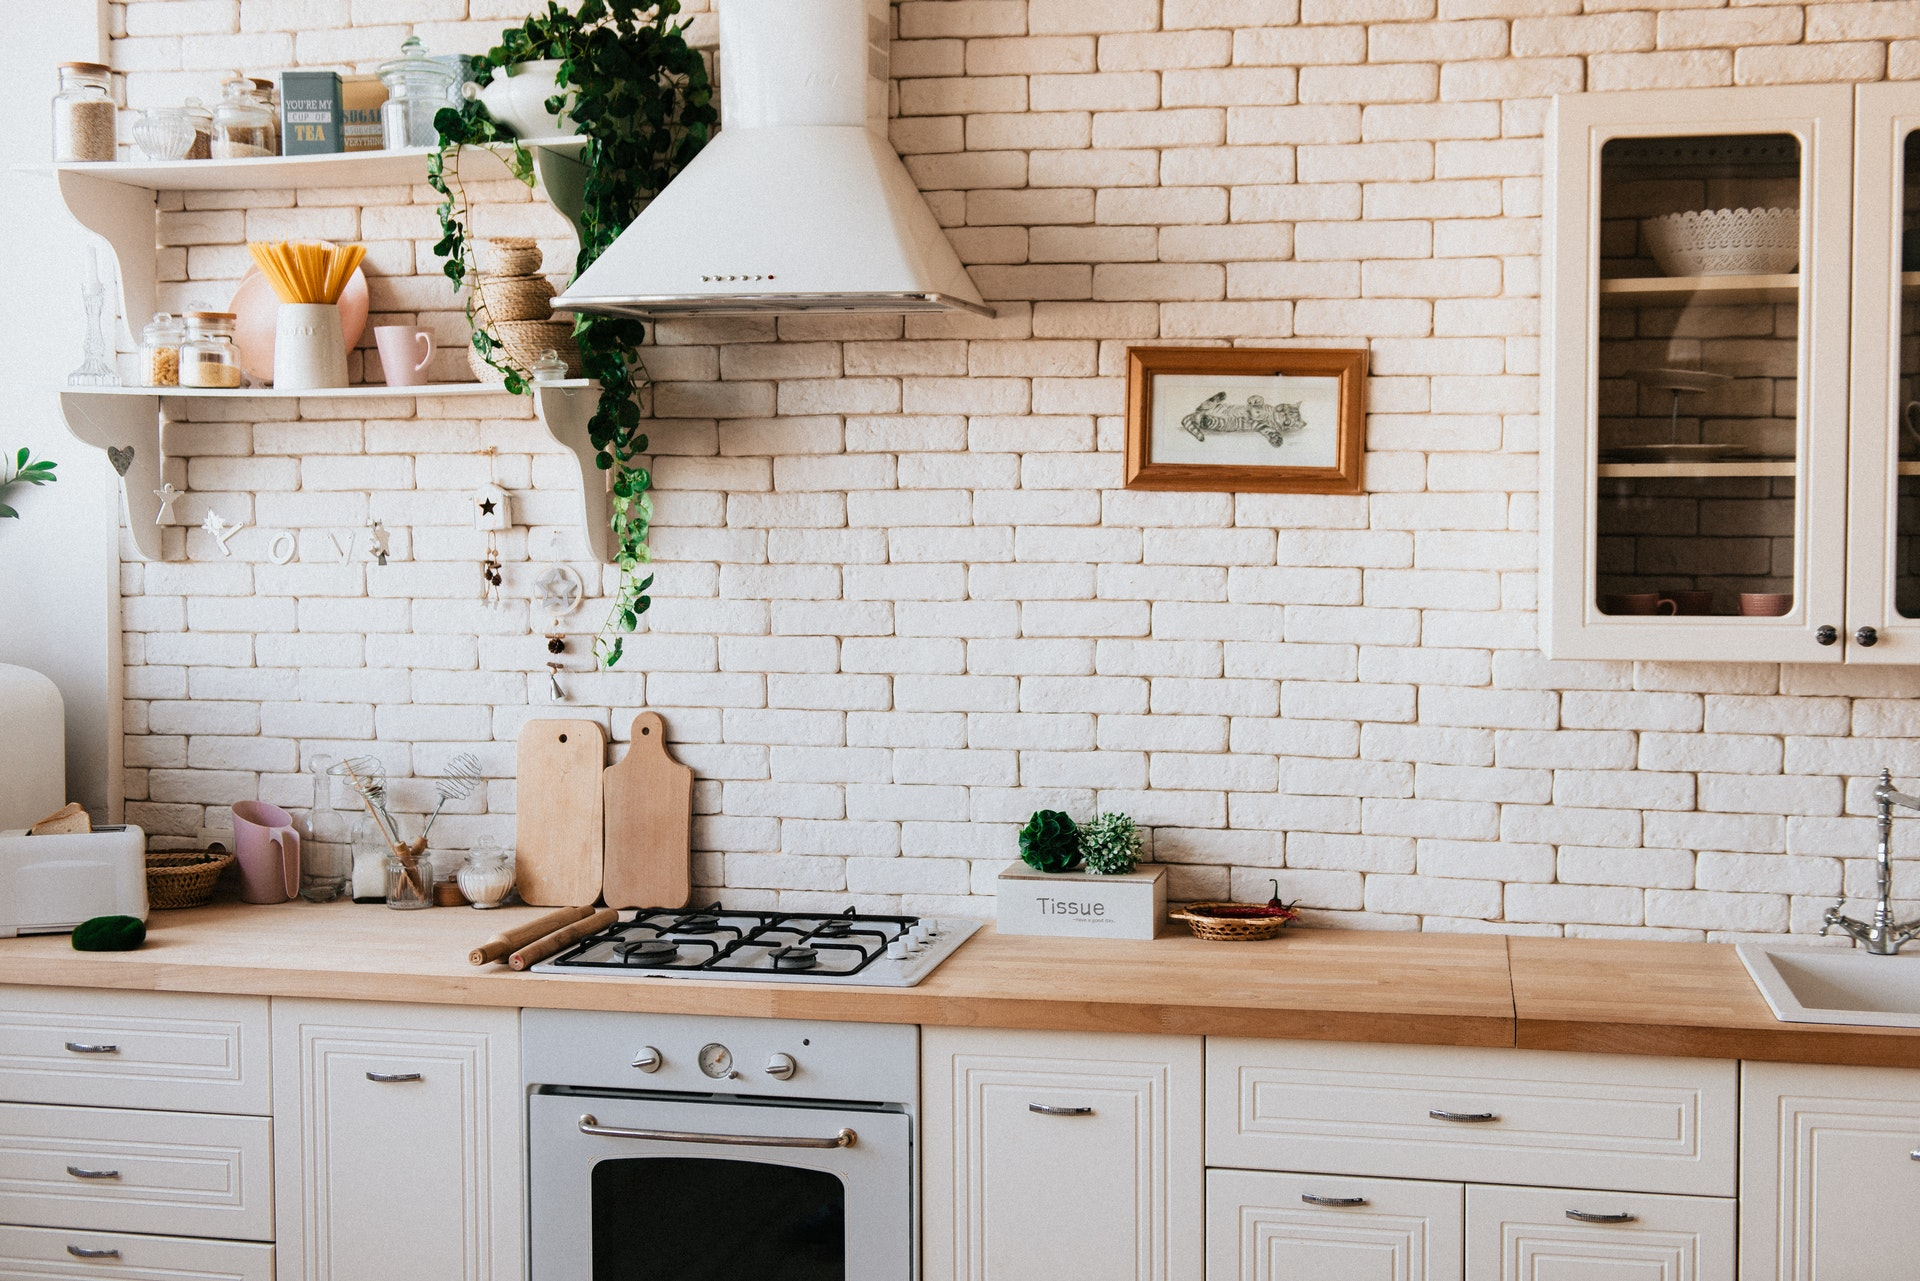 How to Modernise a Kitchen on a Budget